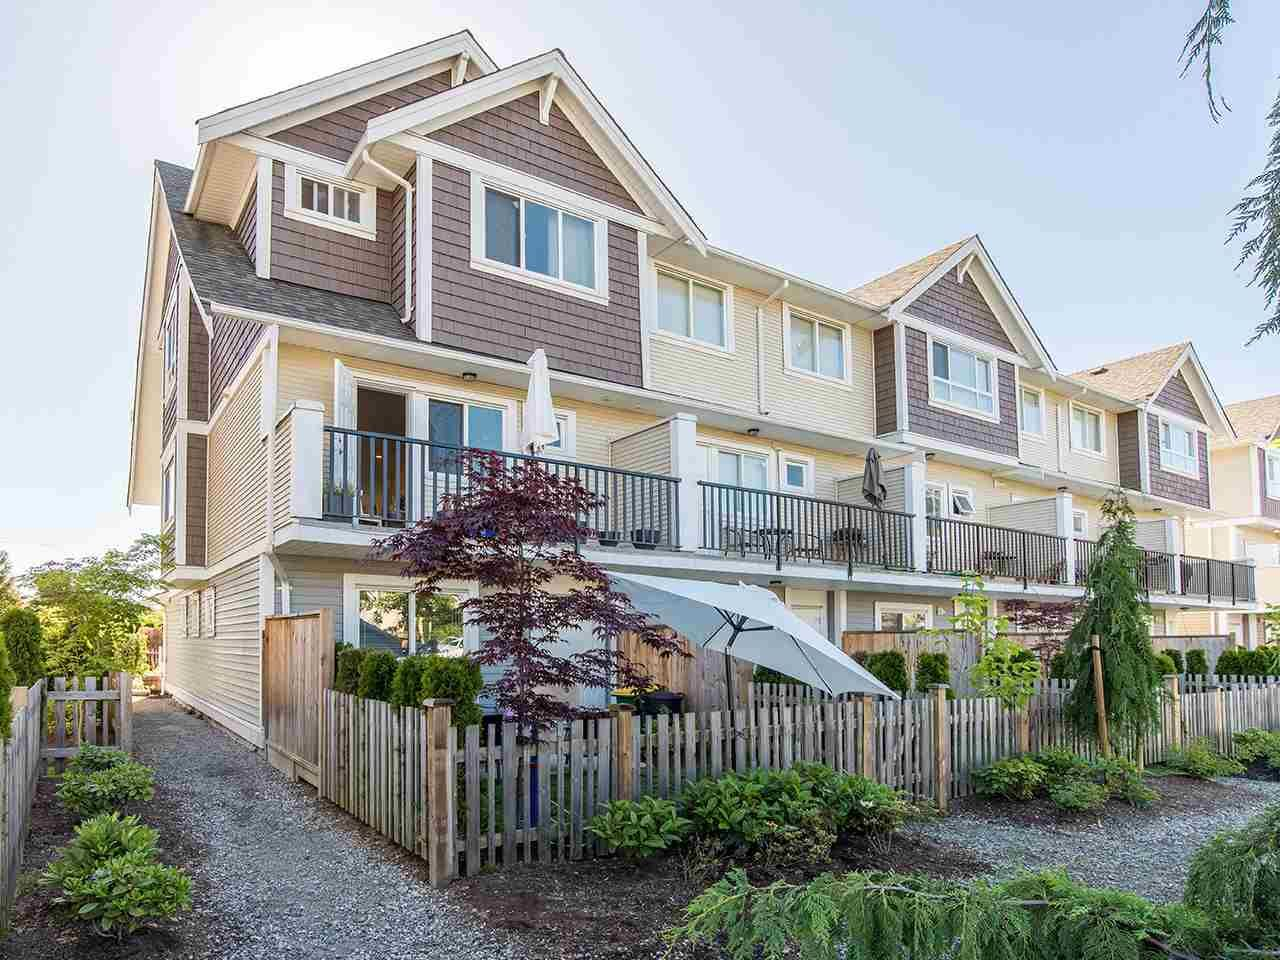 """Main Photo: 16 7298 199A Street in Langley: Willoughby Heights Townhouse for sale in """"YORK"""" : MLS®# R2068285"""